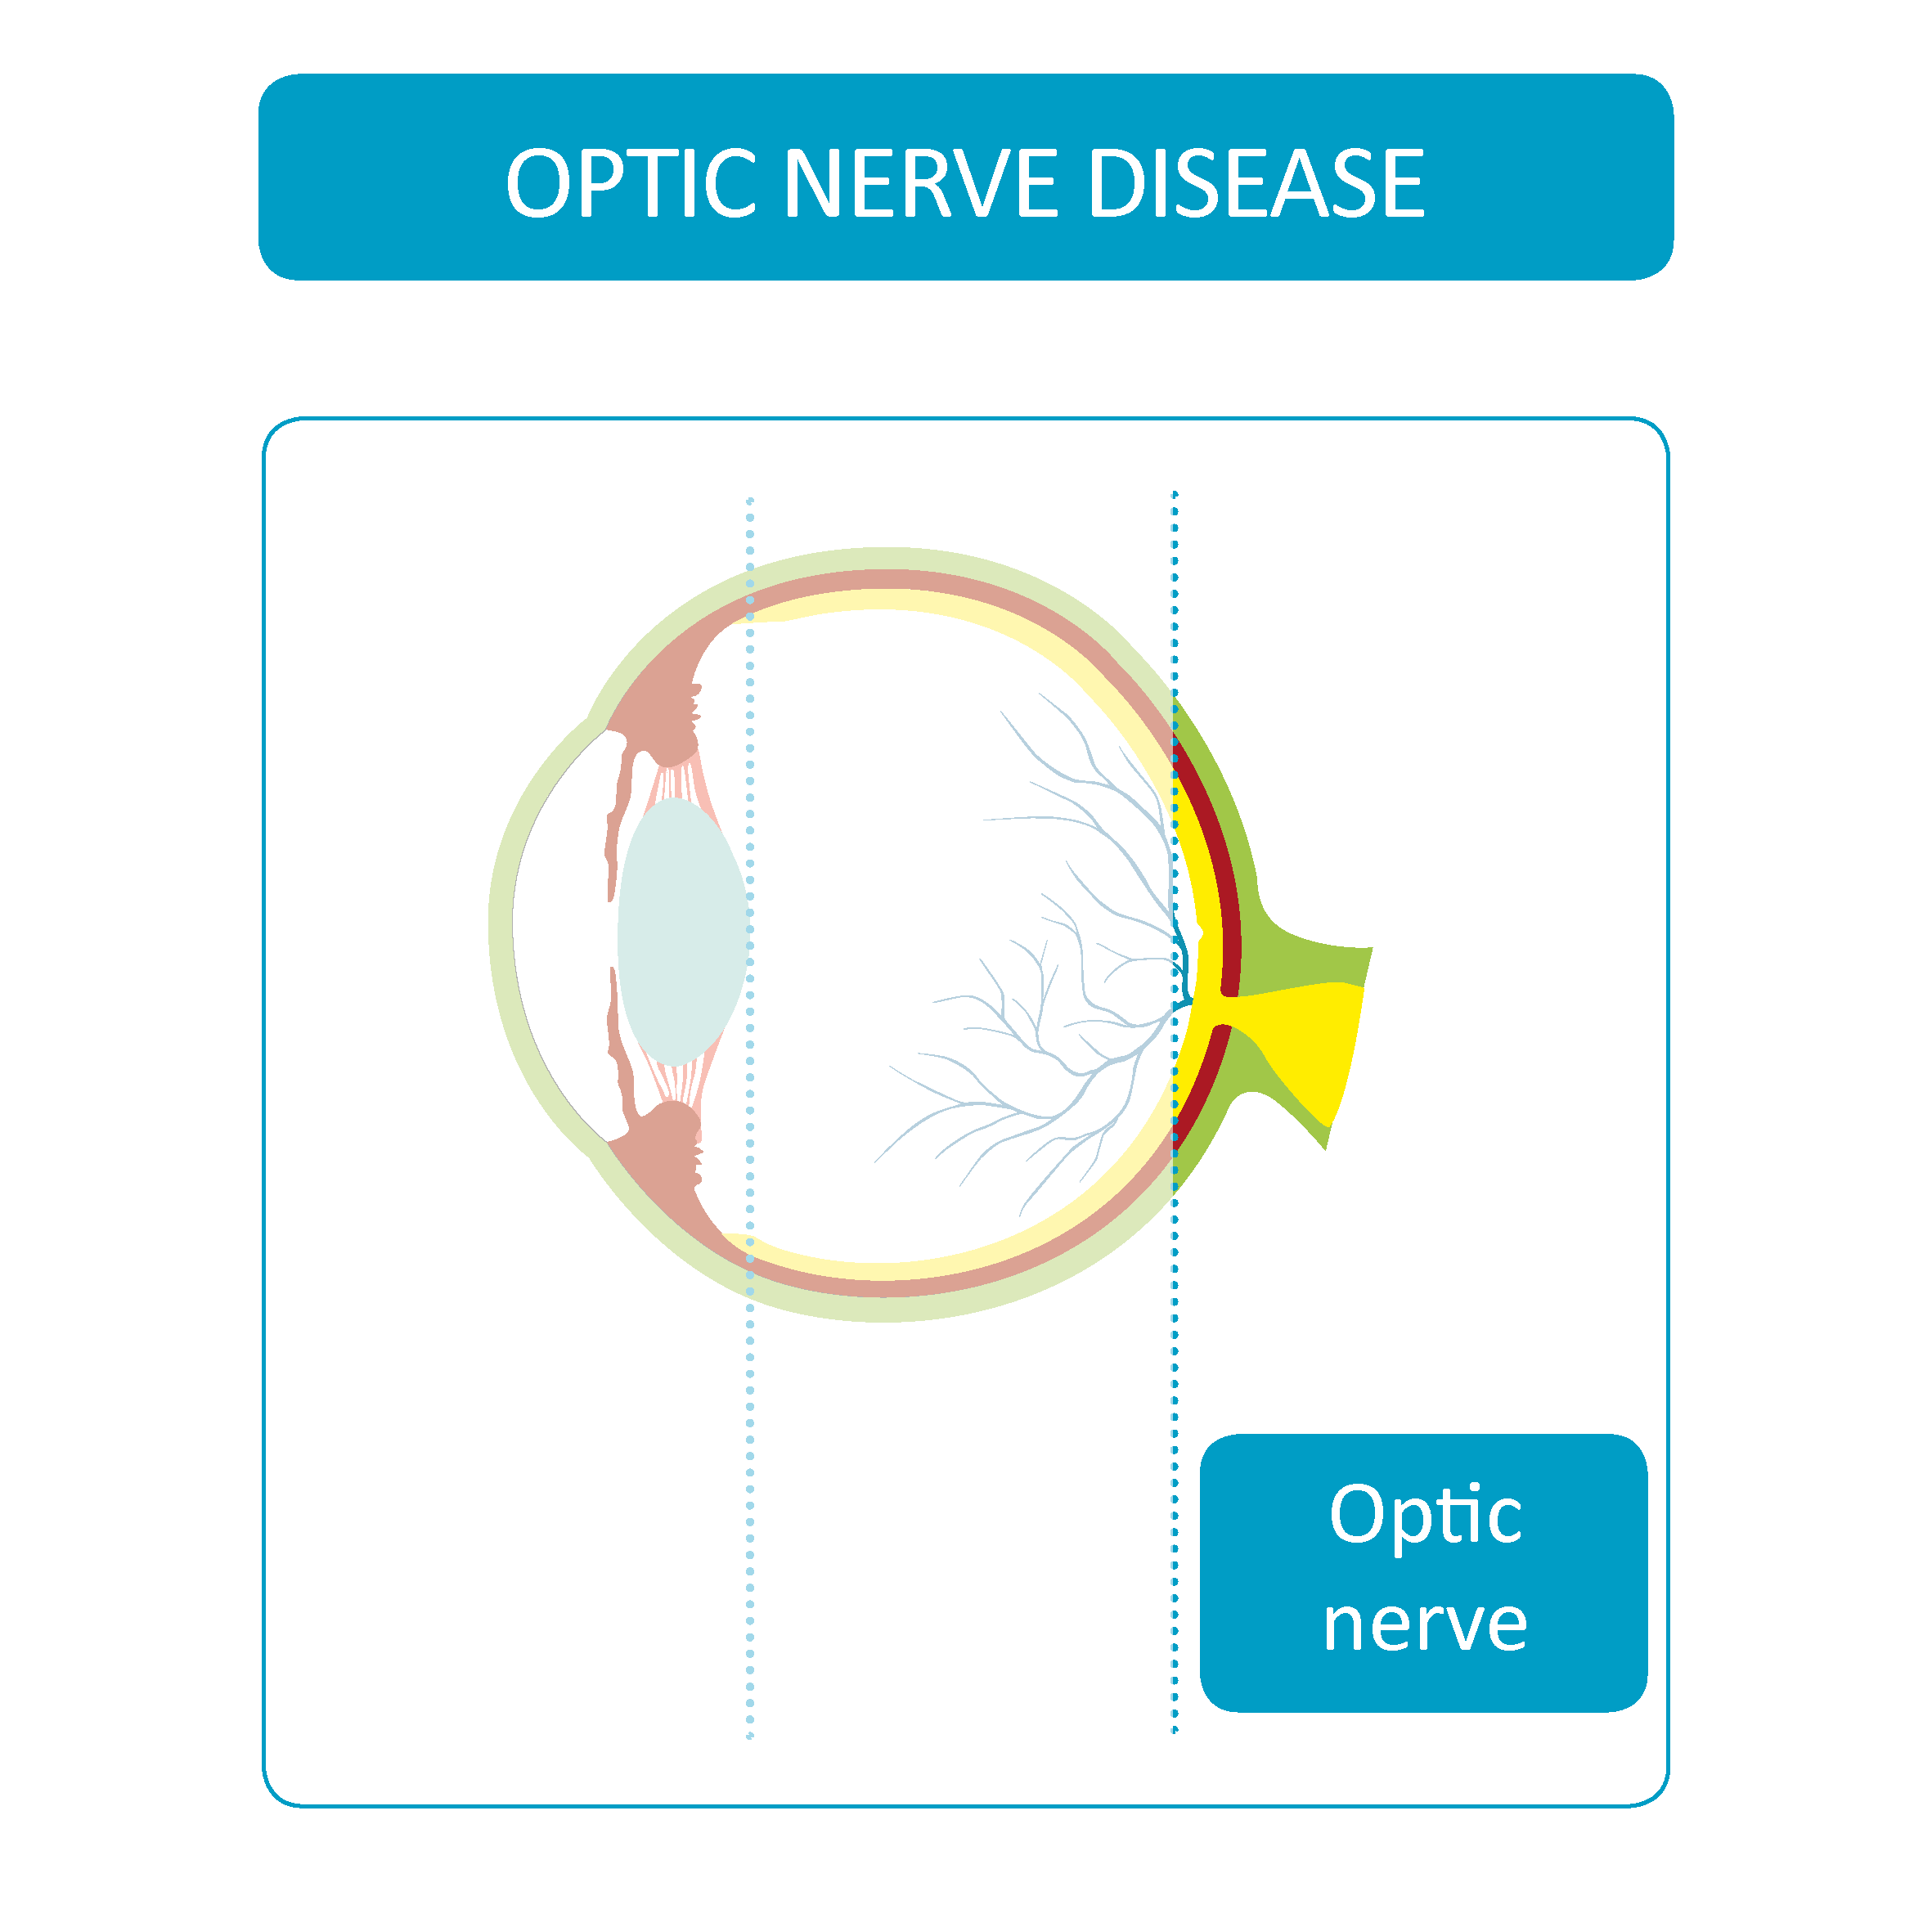 Optic nerve diseases